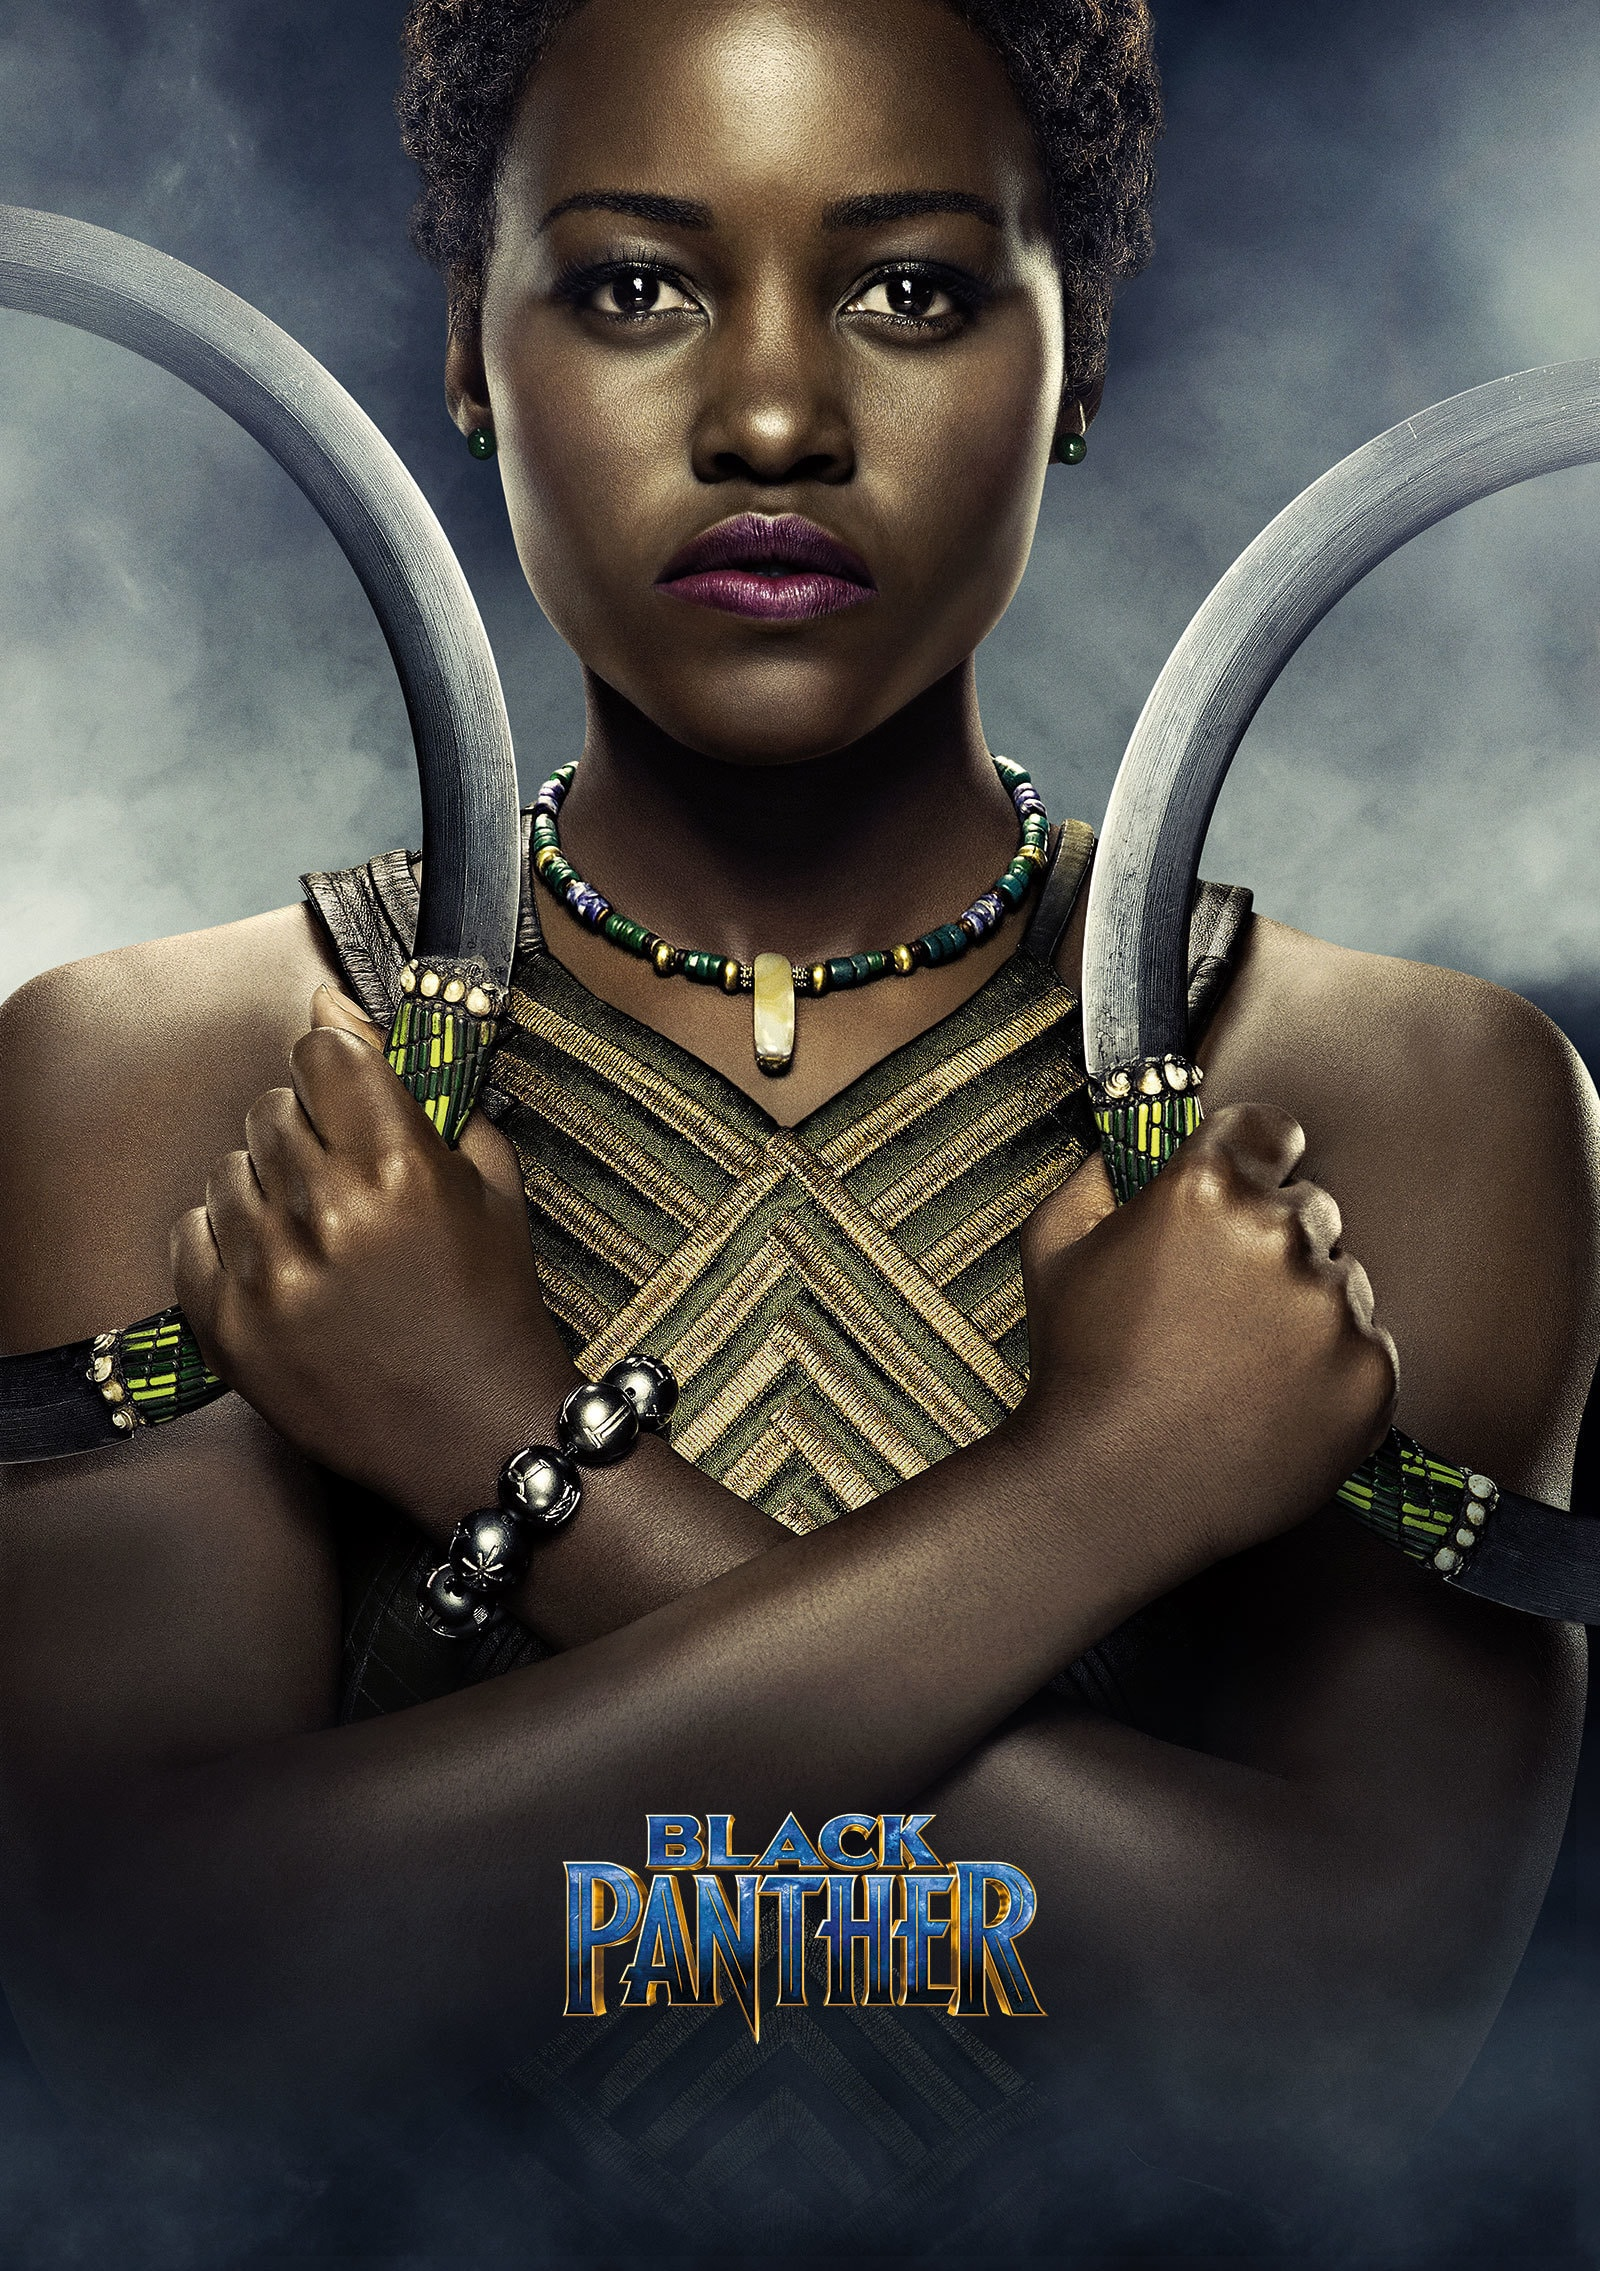 Black Panther - Characters - NAKIA